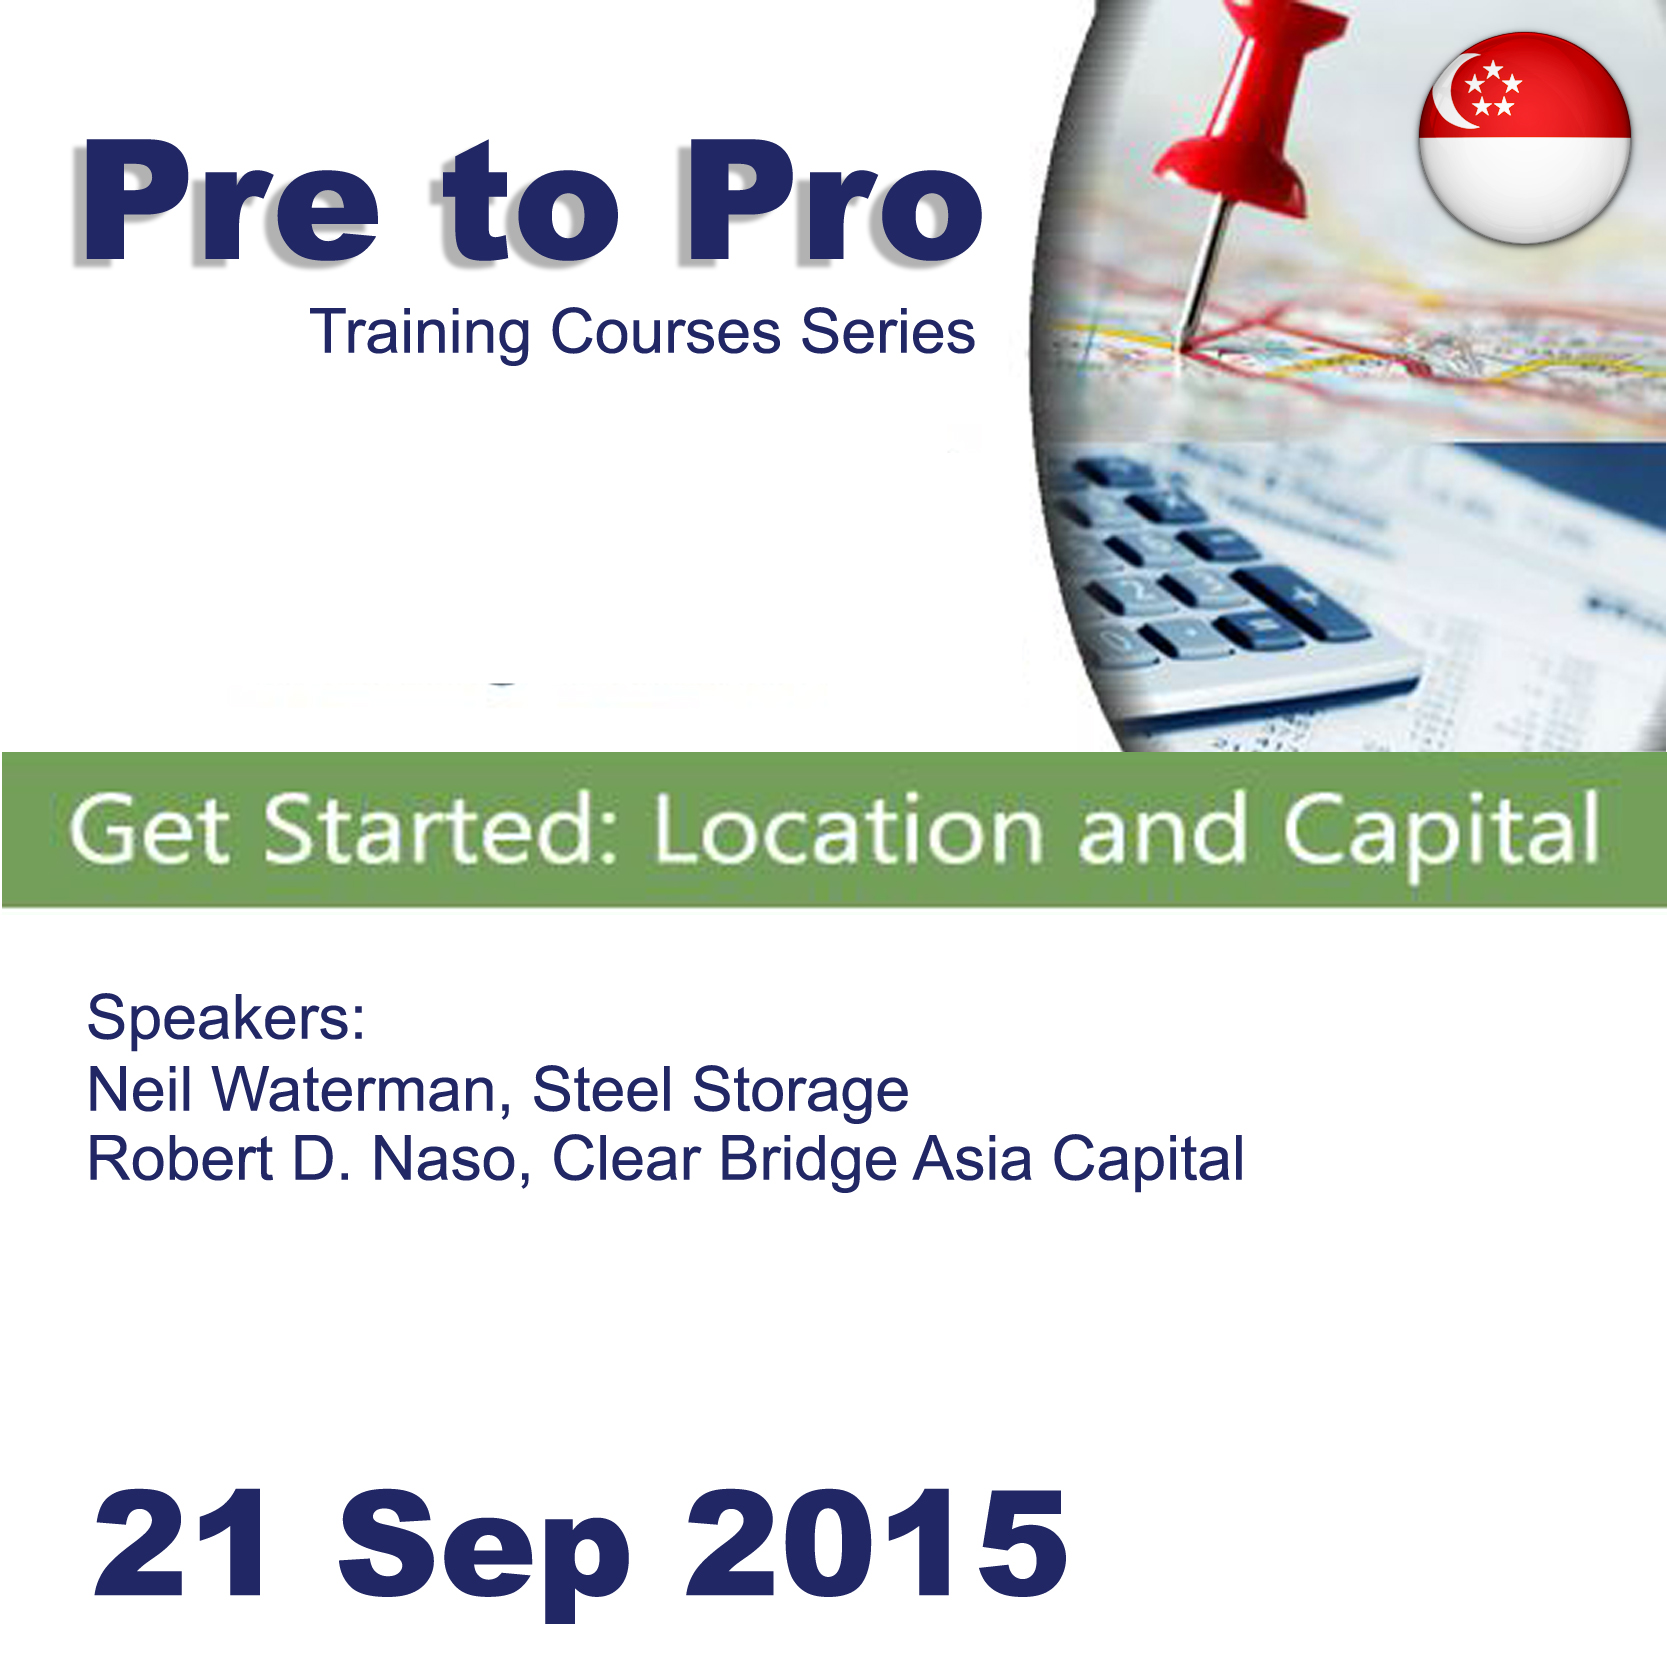 Sep 21 - Pre to Pro Training Series: Get Started - Location and Capital@Singapore